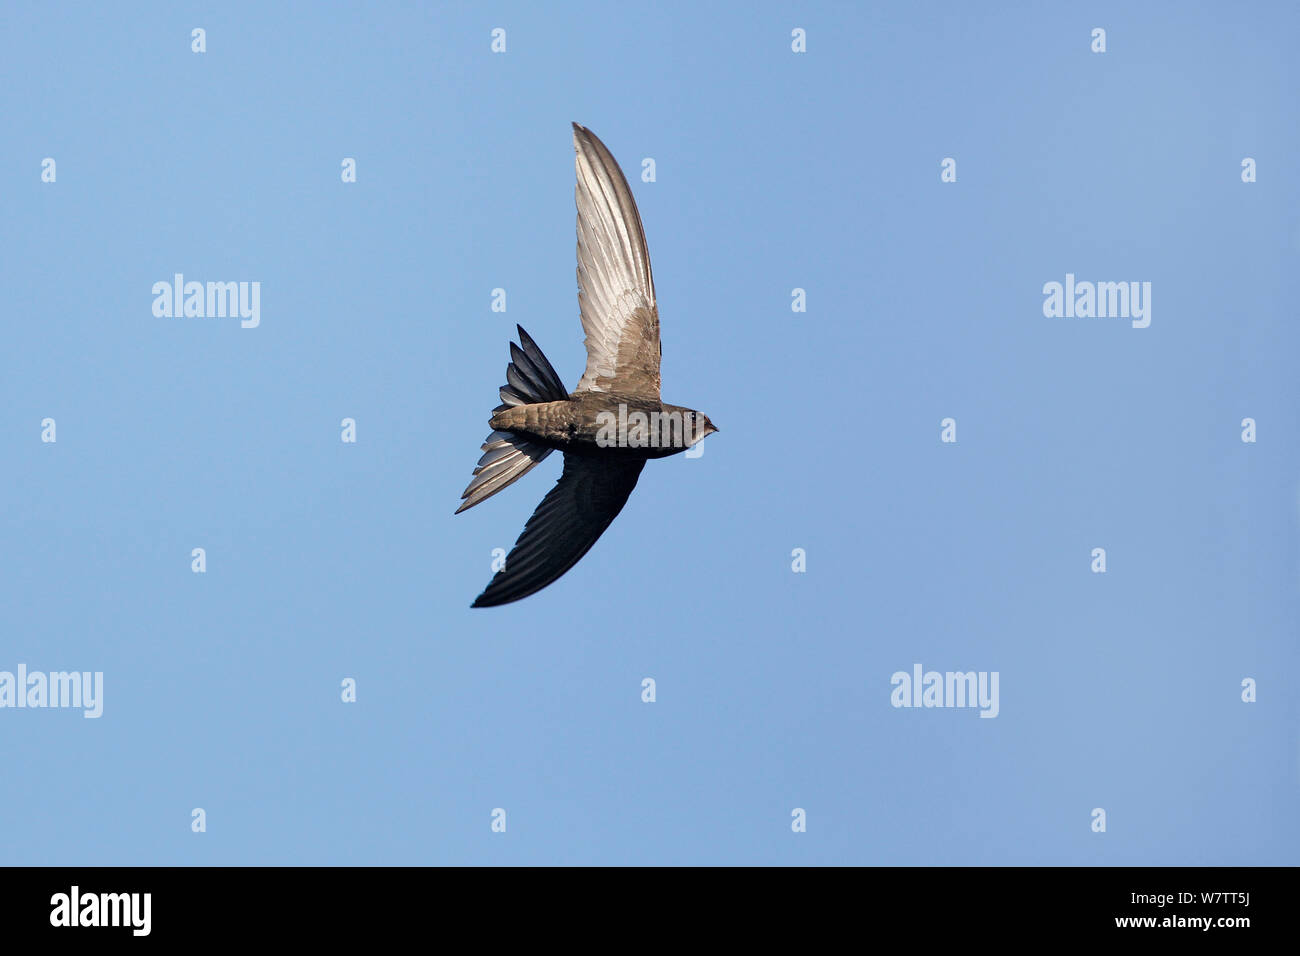 Common Swift (Apus apus) in flight, Wirral, Merseyside, UK, July. Stock Photo